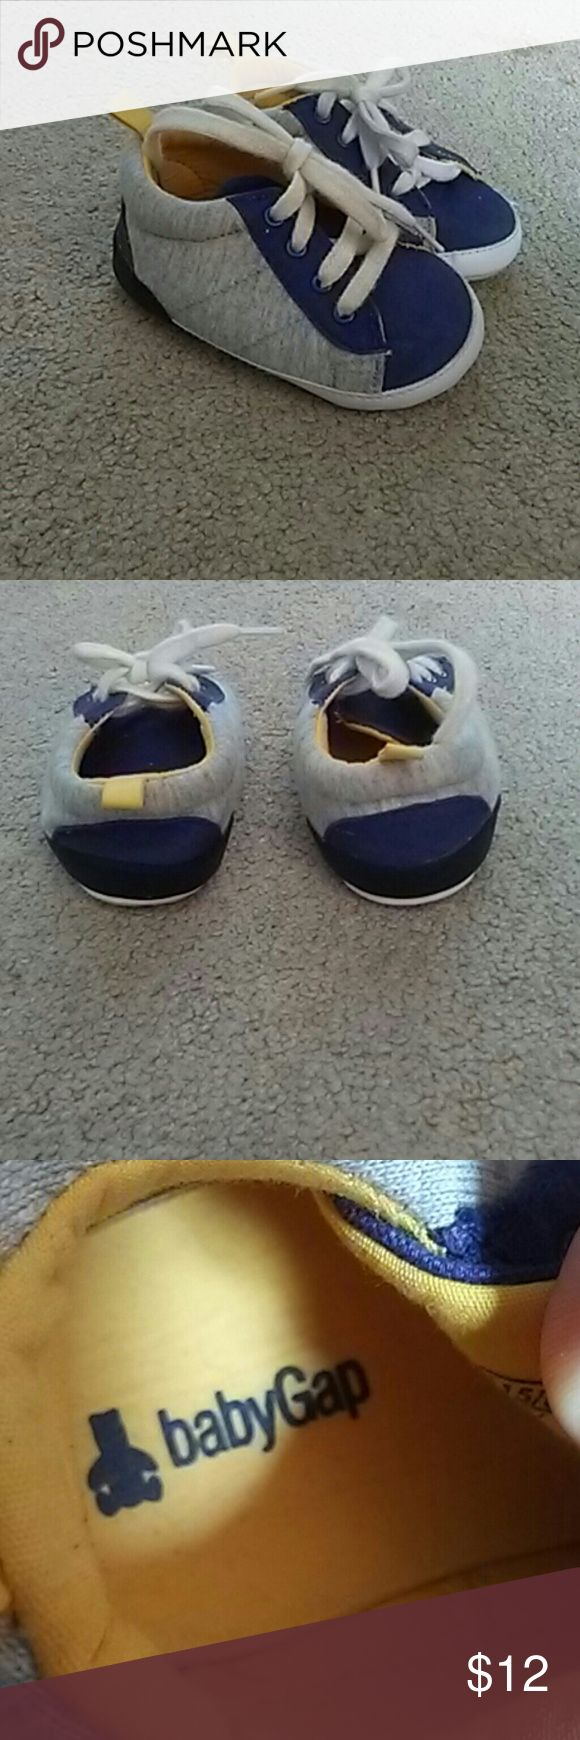 Baby boys Gap shoes Very gentlynused baby boys Gap soft shoes Size 12-18 months GAP Shoes Baby & Walker